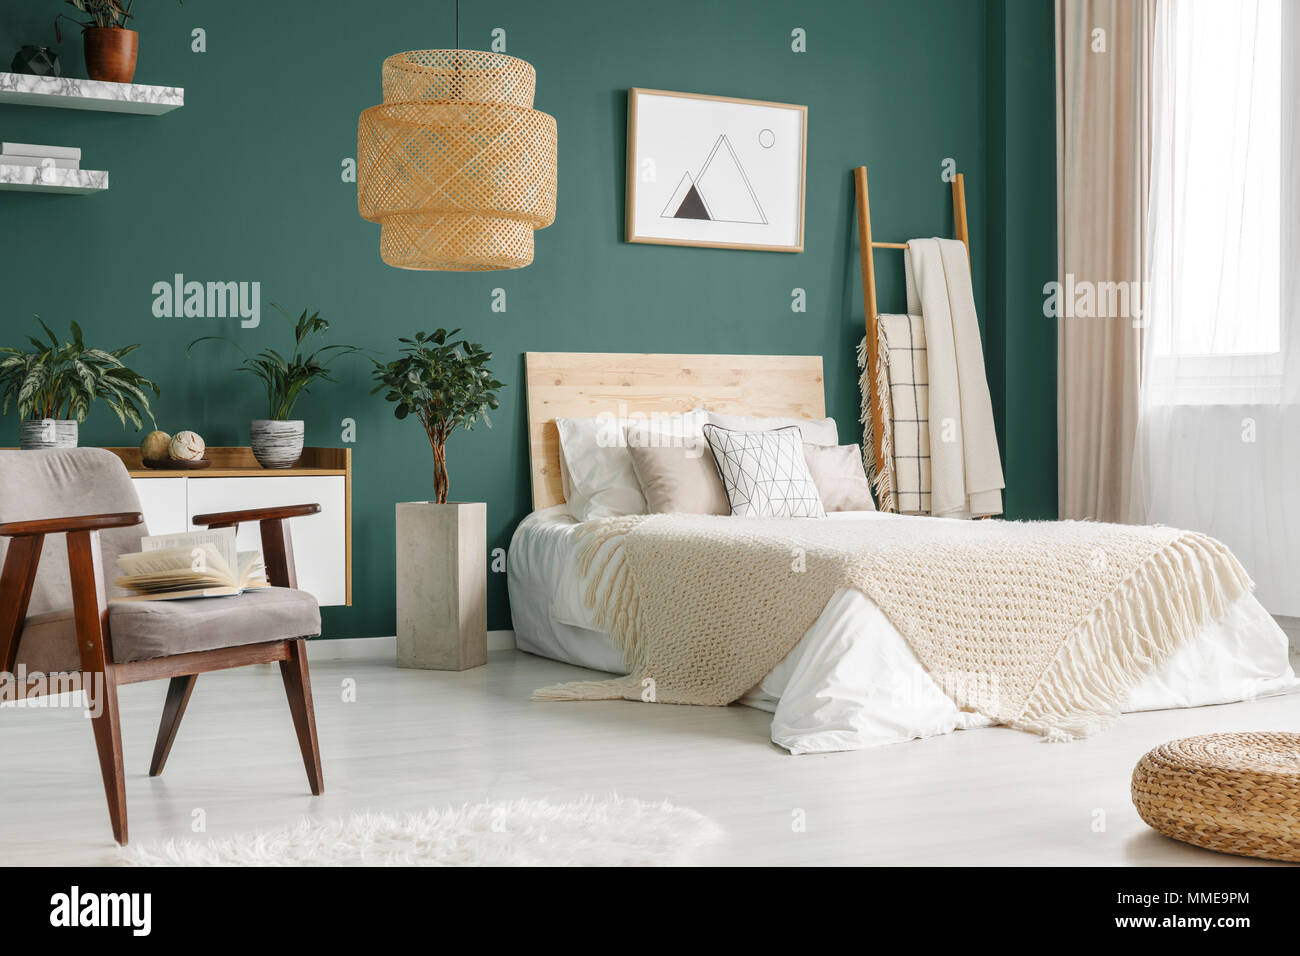 Green bedroom interior with king-size bed, potted plants and big, wicker lamp - Stock Image